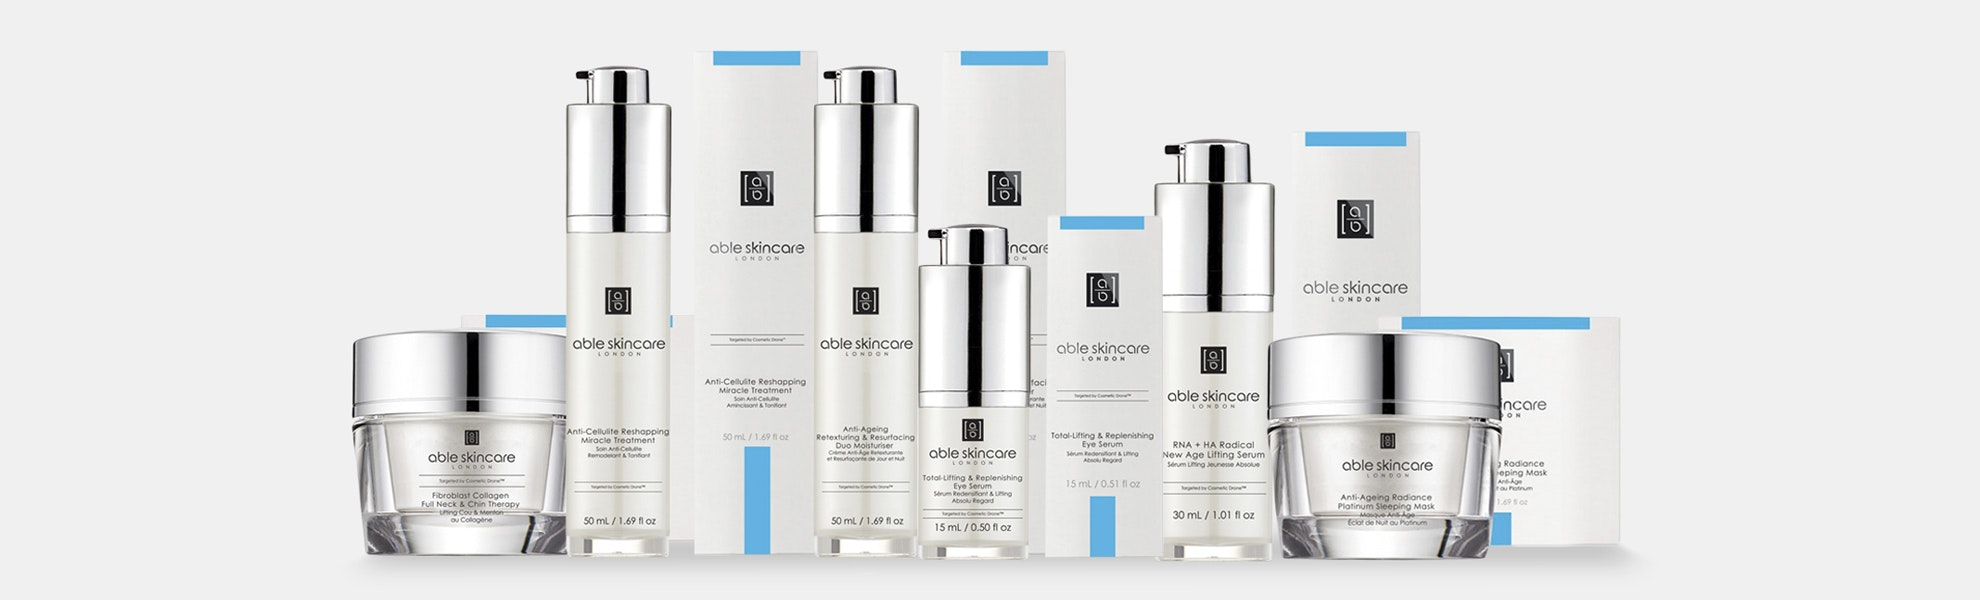 Able Skincare Cosmetic Drone Collection